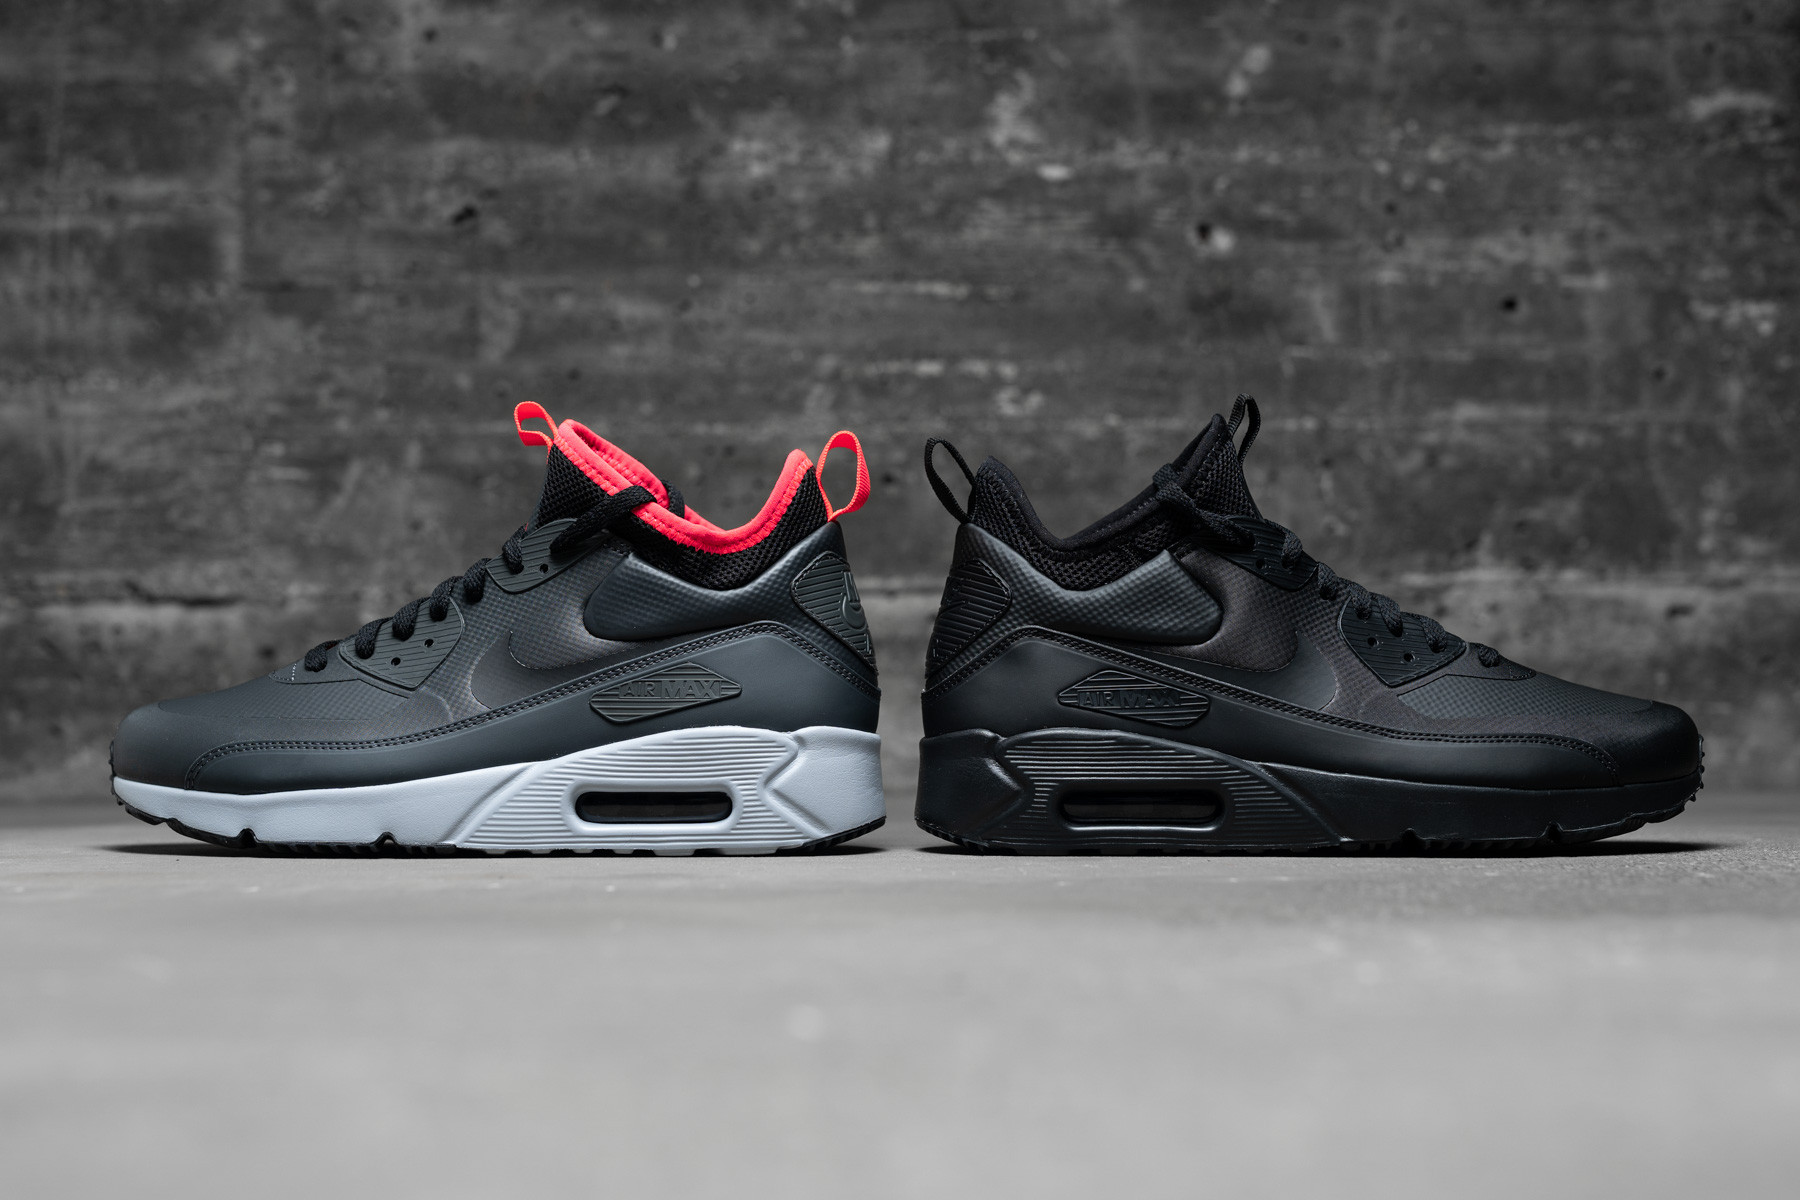 Nike Air Max 90 Ultra Mid Winter Sneaker.no